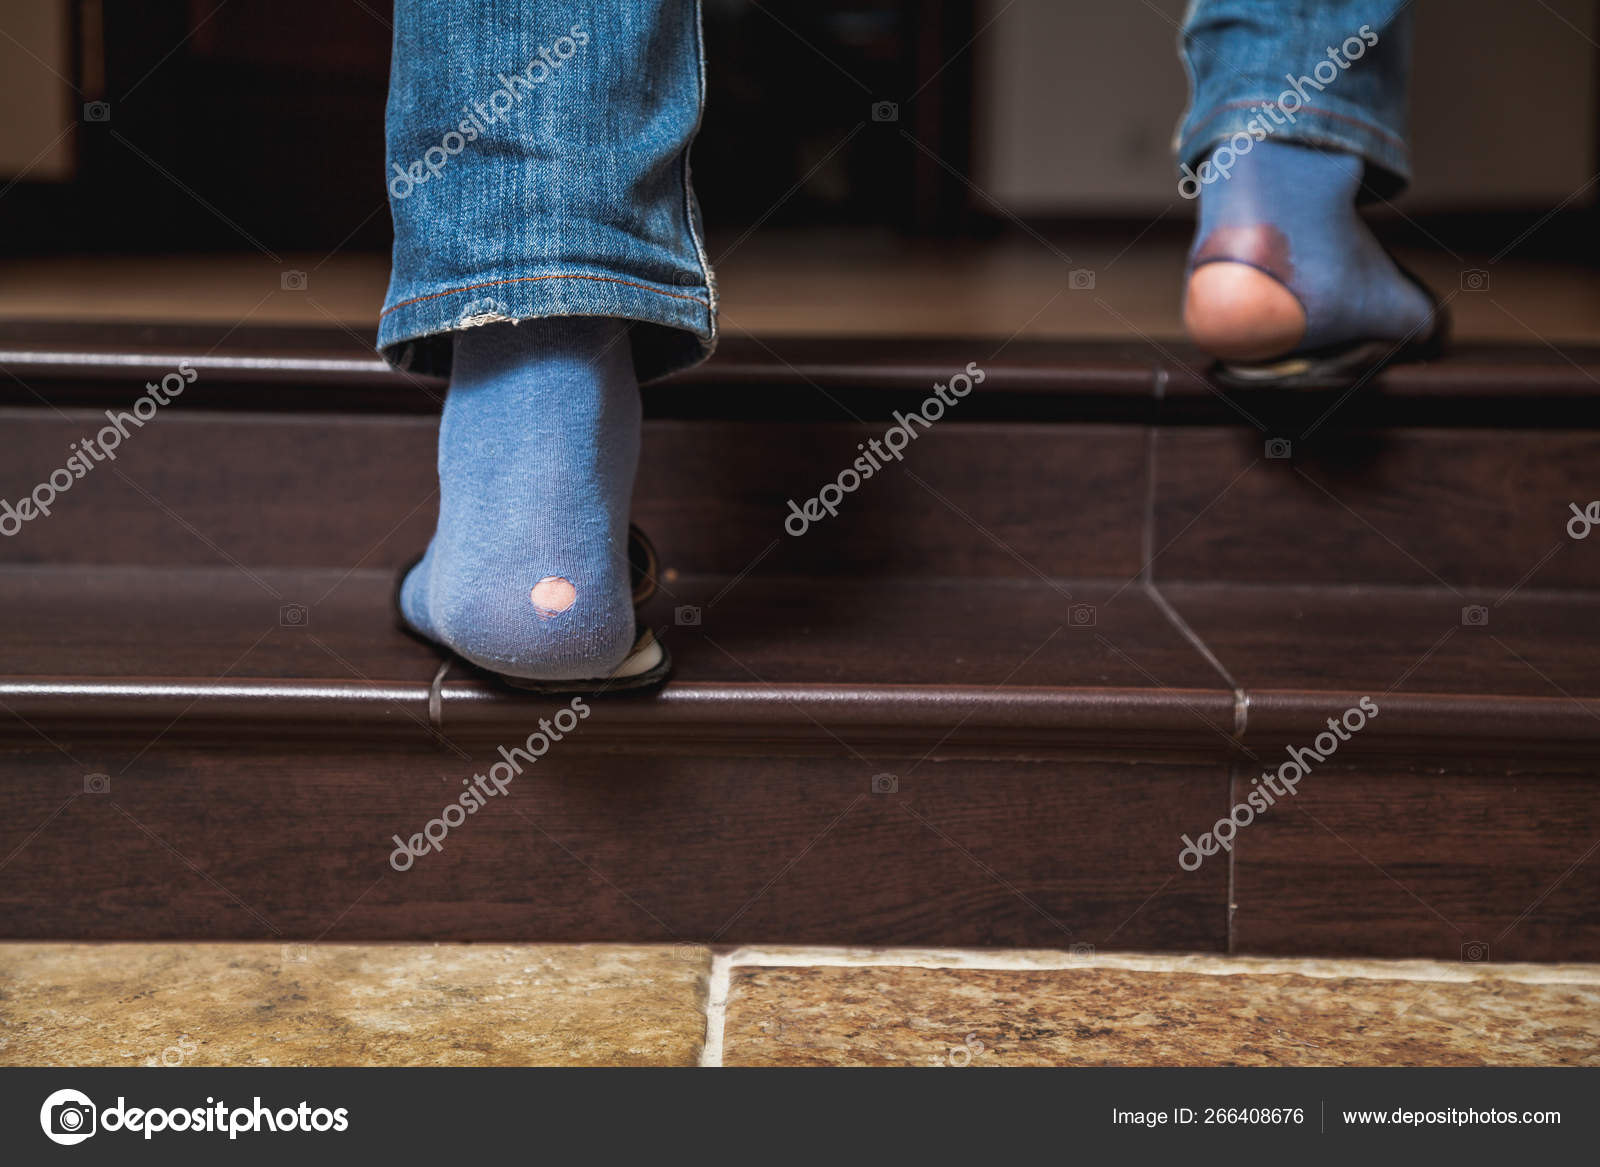 Feet In Jeans And Holey Socks Go Up Stairs Stock Photo